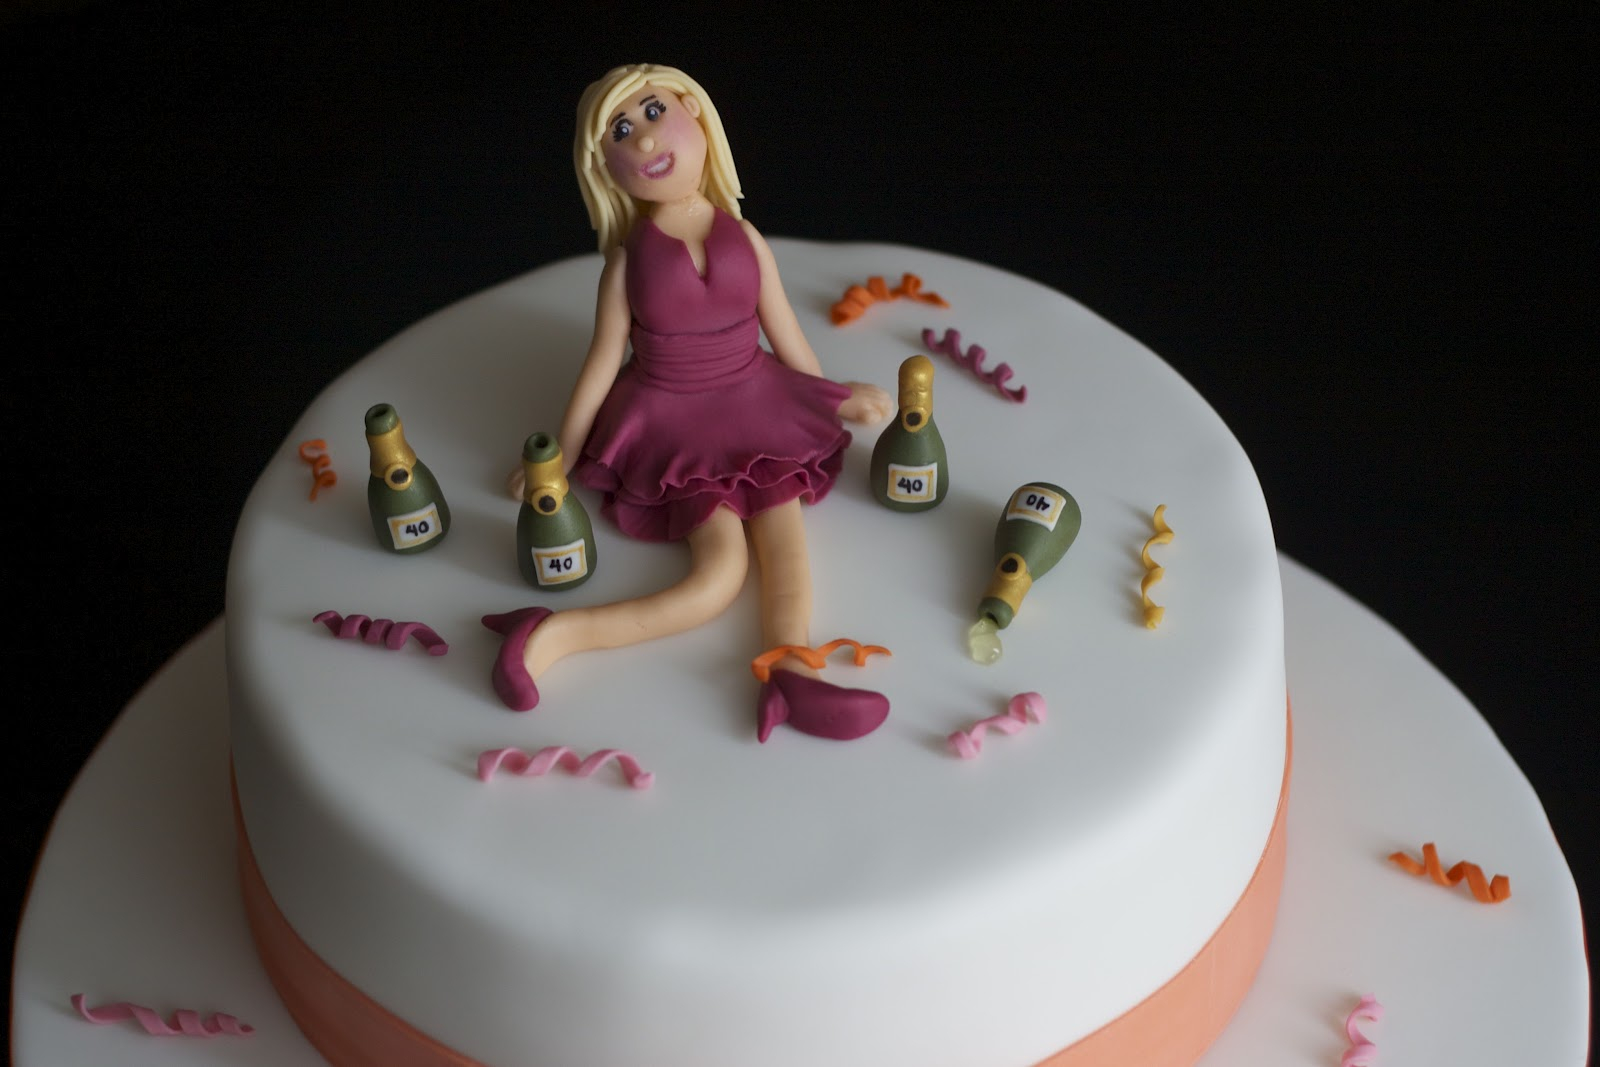 Teen Birthday Cake 24 Awesome Birthday Cakes For Girls From 18 To 21 Years Cakes And